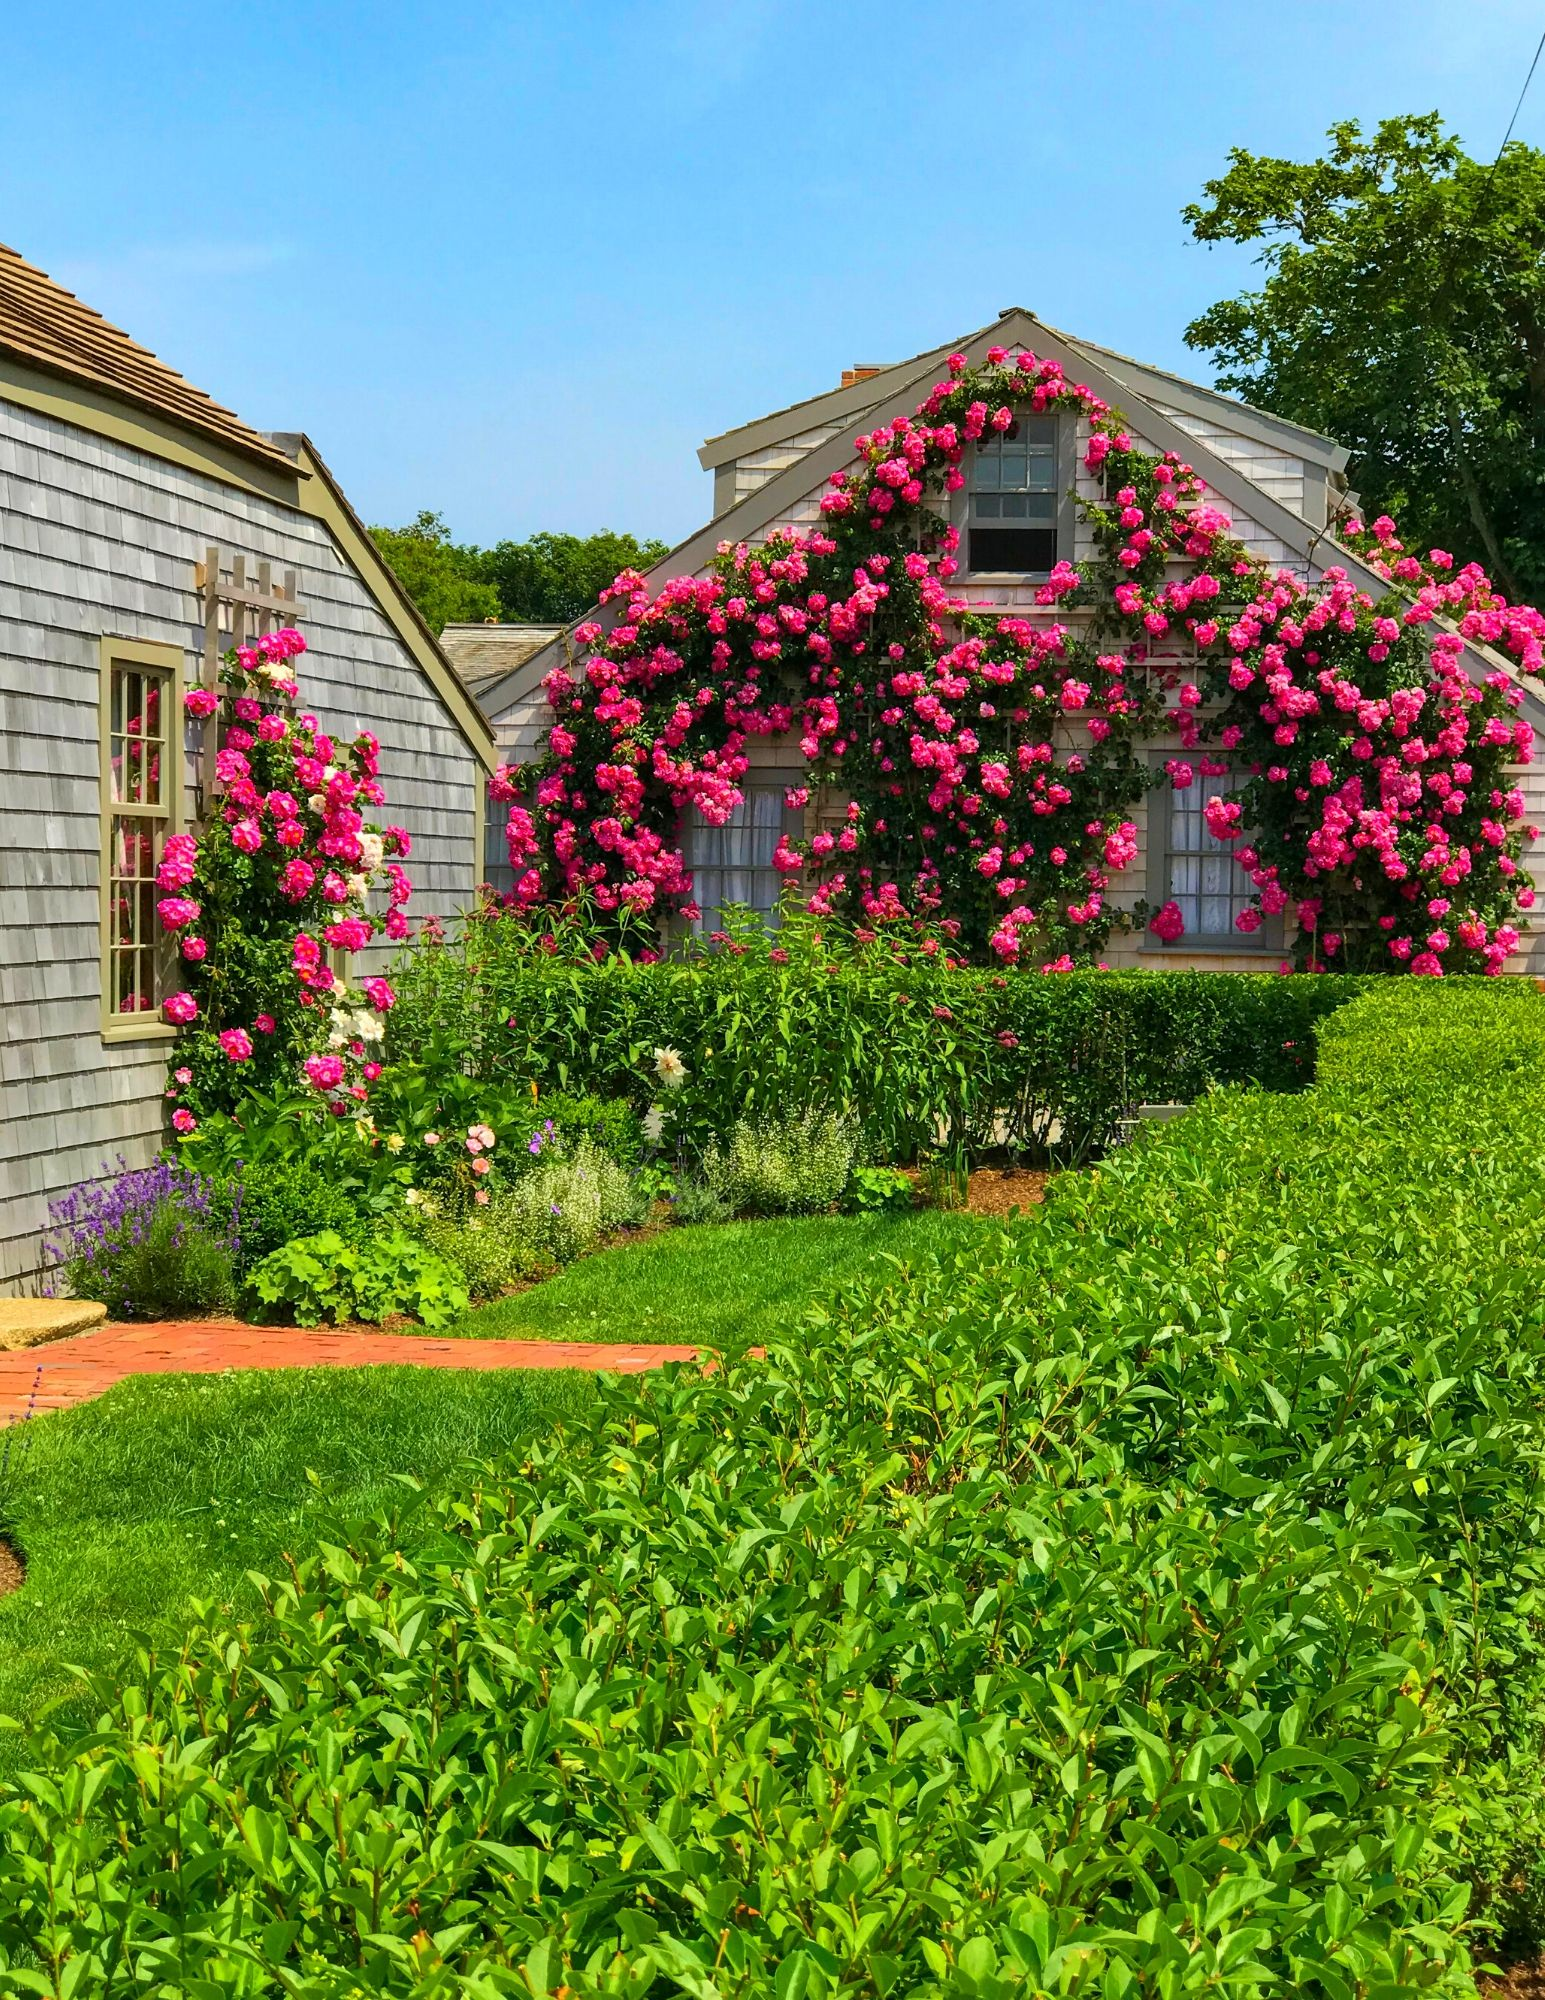 Nantucket Rose Covered Cottages in Sconset-19